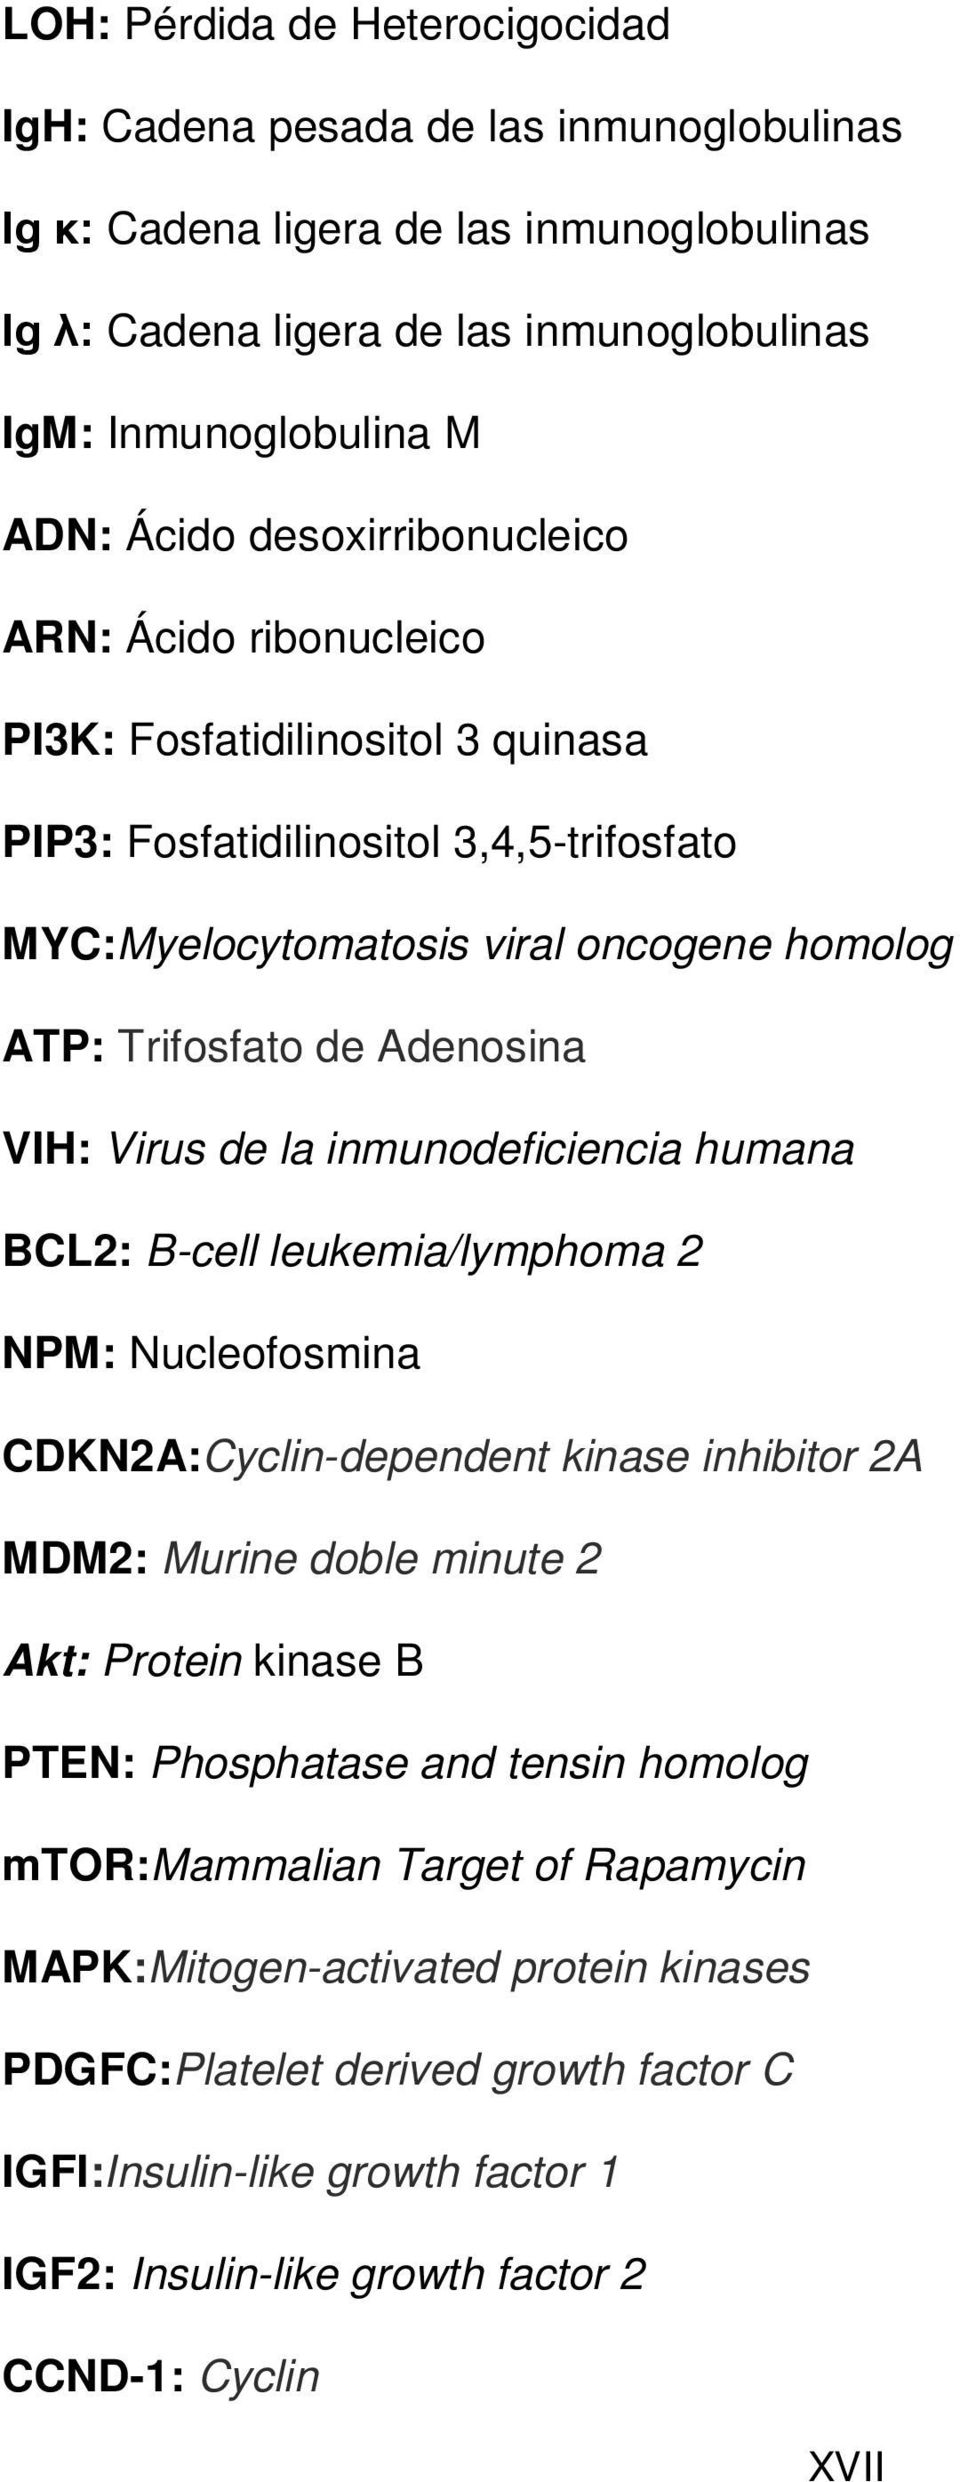 Virus de la inmunodeficiencia humana BCL2: B-cell leukemia/lymphoma 2 NPM: Nucleofosmina CDKN2A:Cyclin-dependent kinase inhibitor 2A MDM2: Murine doble minute 2 Akt: Protein kinase B PTEN: